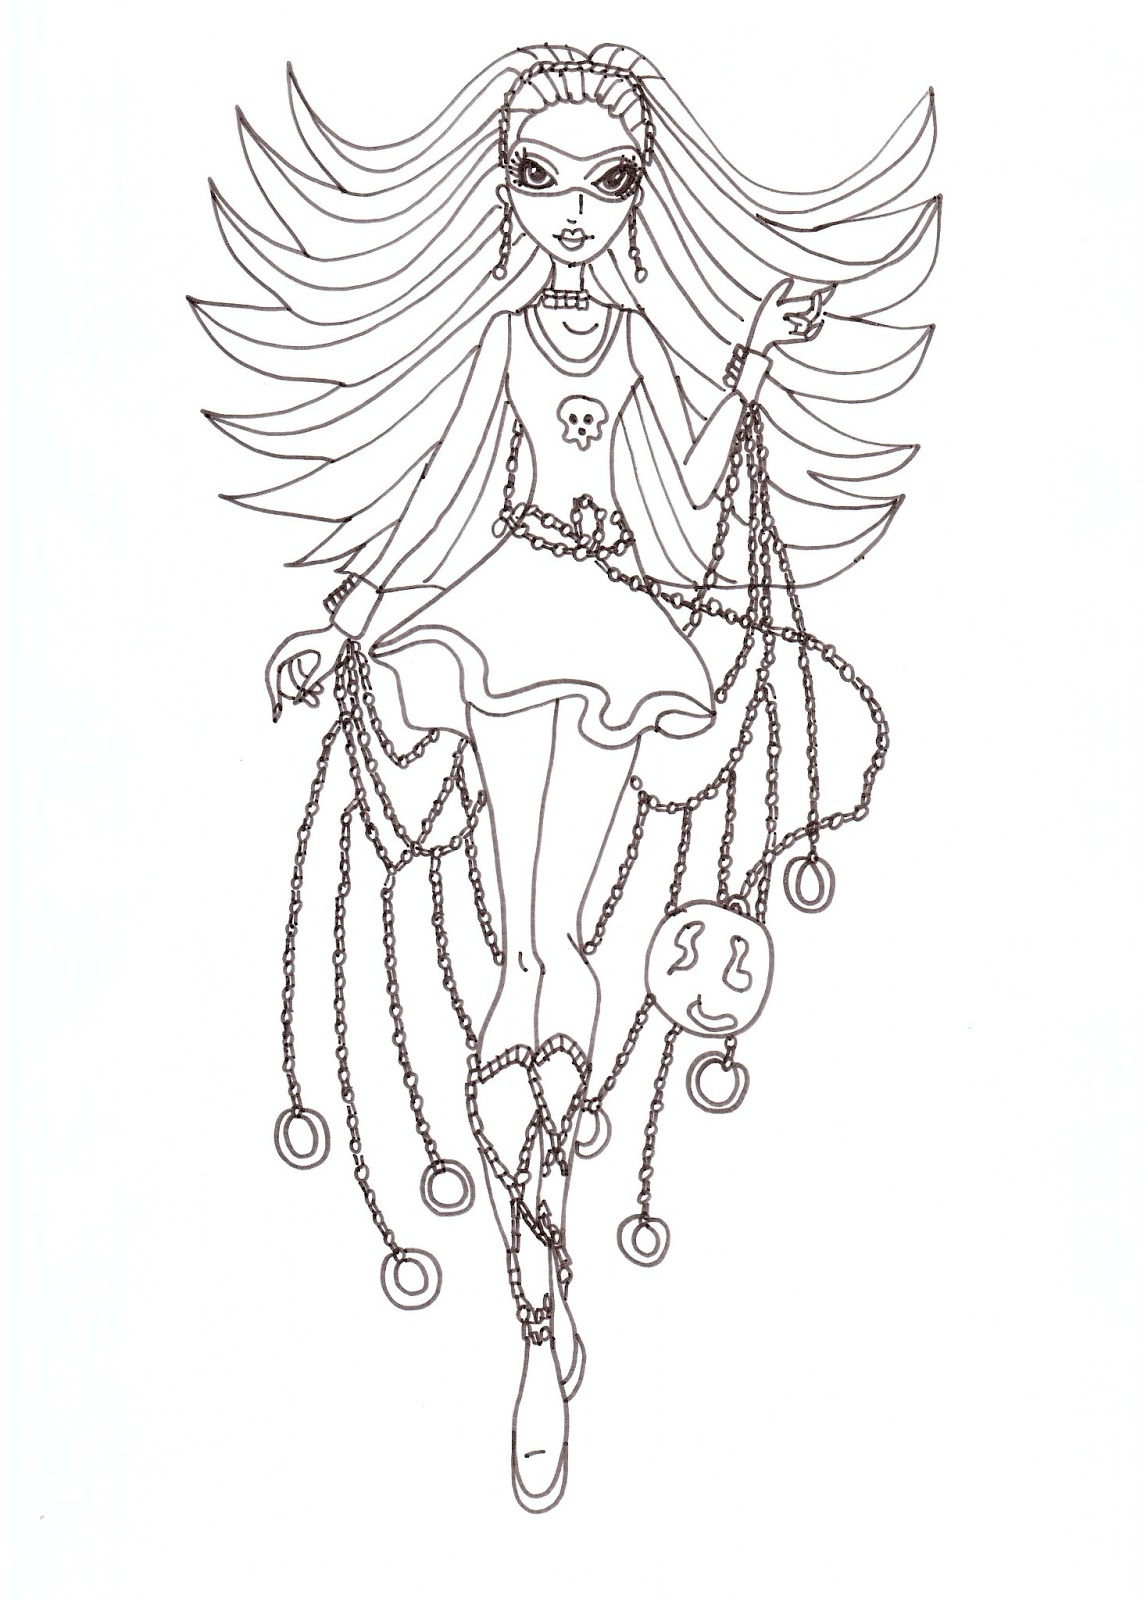 Free Printable Monster High Coloring Pages: Spectra Polter